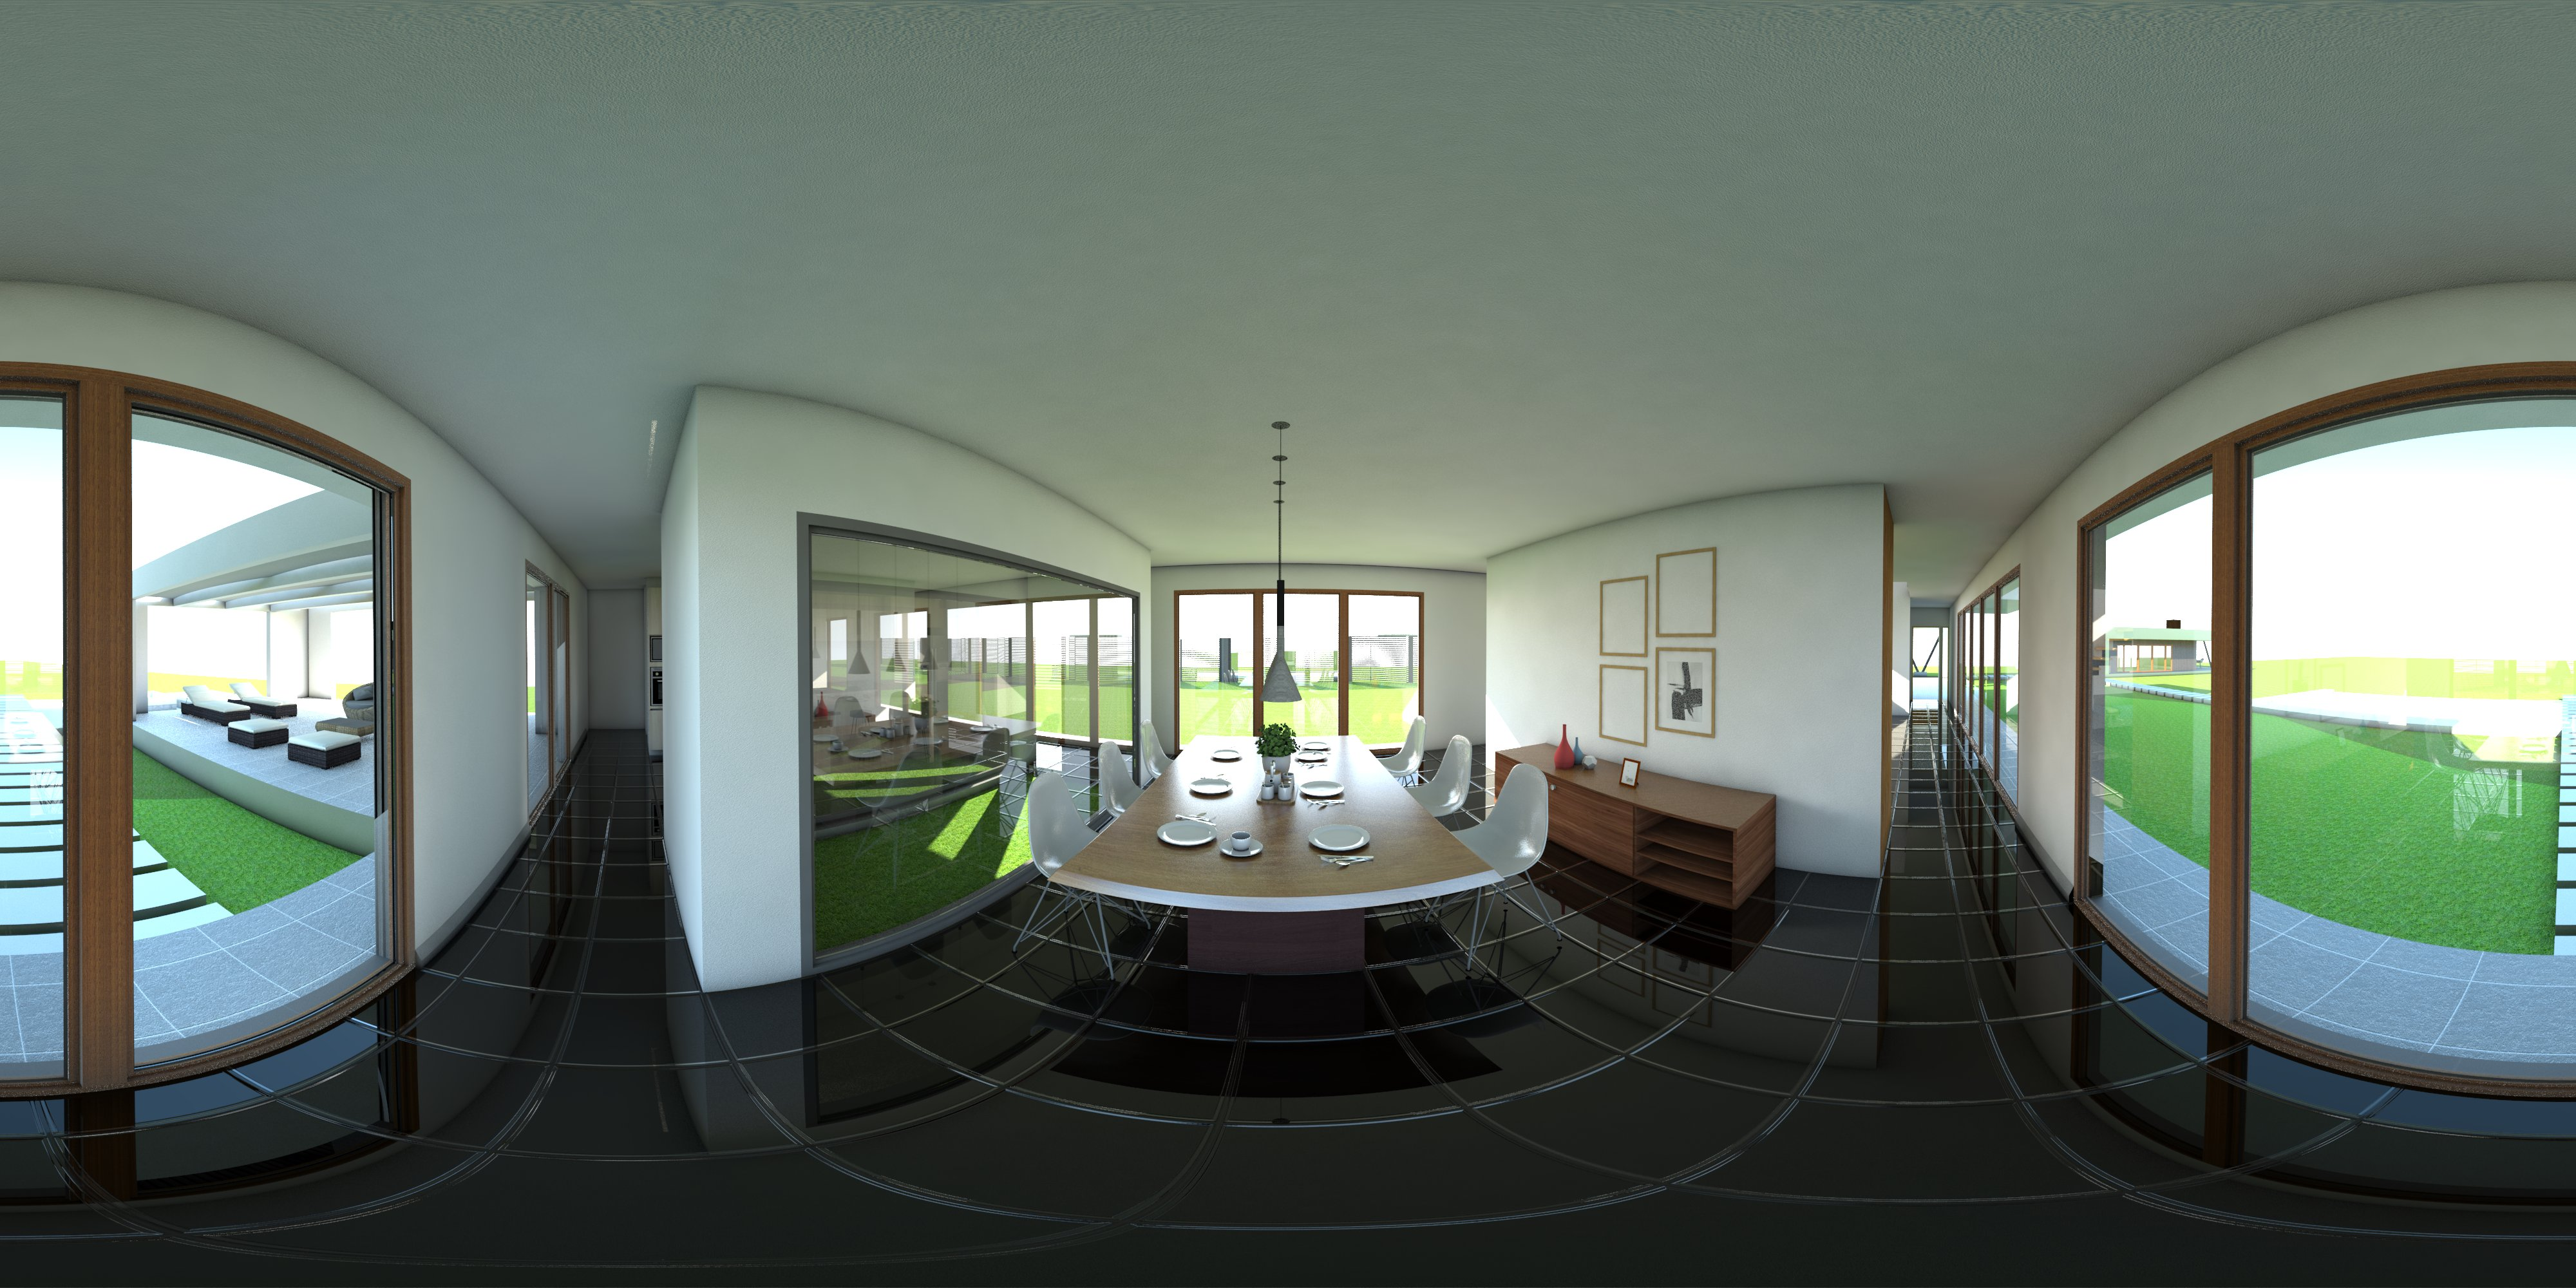 360 images using 3DS Max